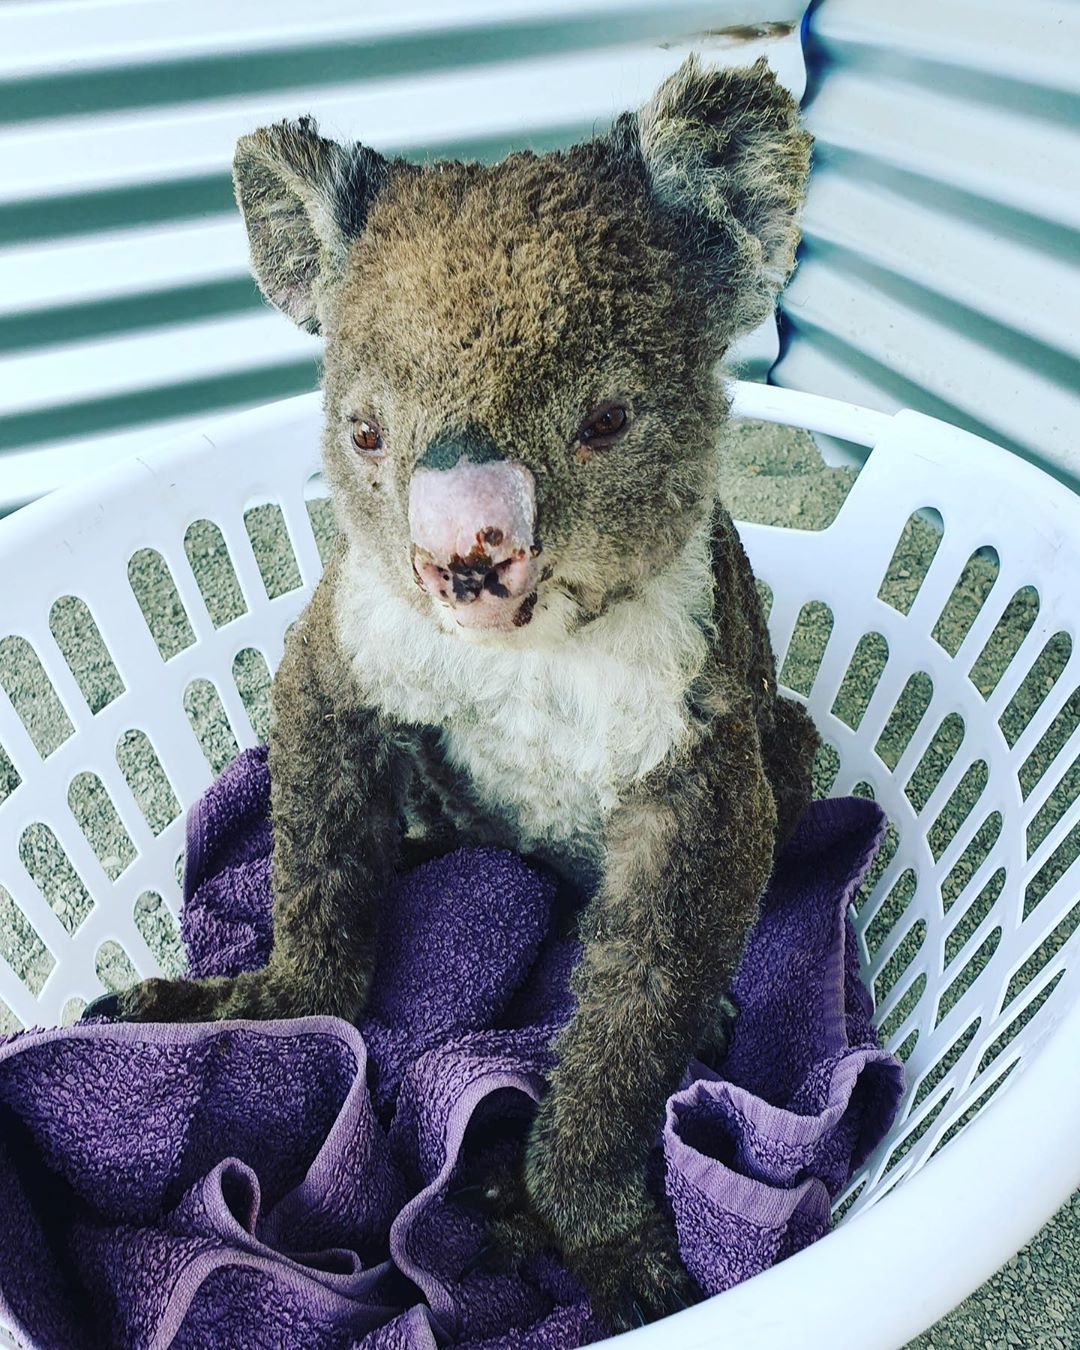 Scott Miller On Instagram Little Singe Y Named Using Very Dry Australian Humour Is Showing Good Signs Of Improveme In 2020 Cute Baby Animals Cute Animals My Animal